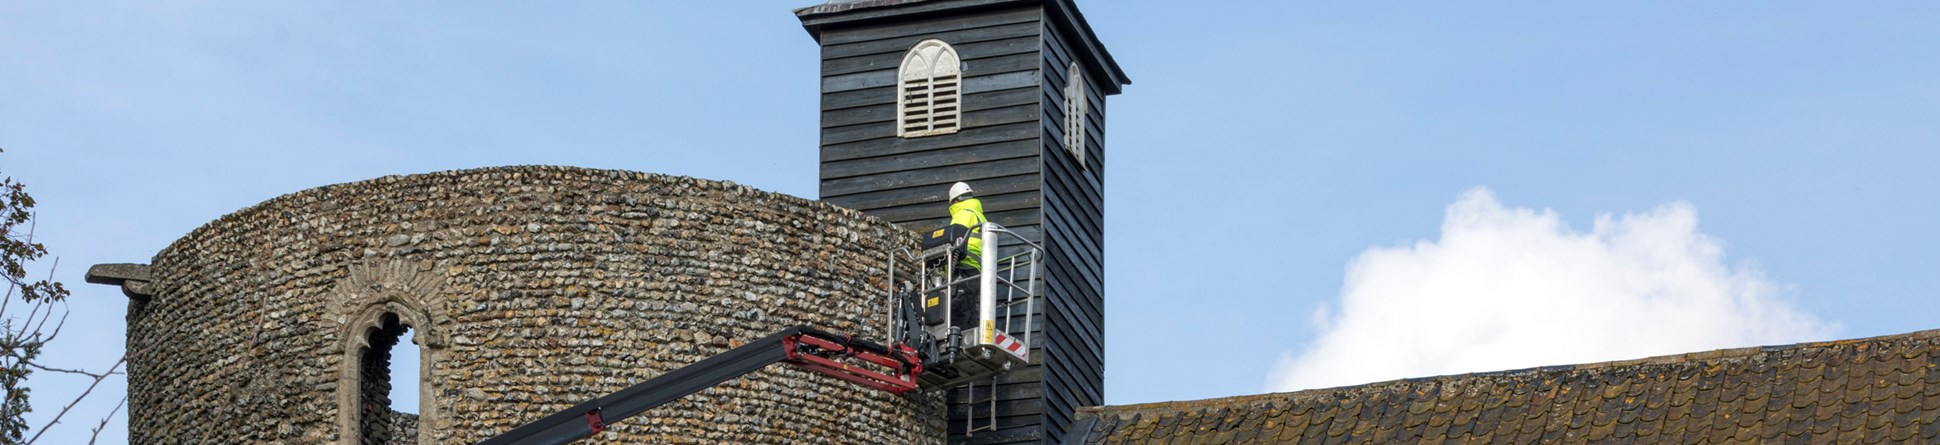 A man in high-vis jacket and hard hat works on the tower wall from a cherry picker.